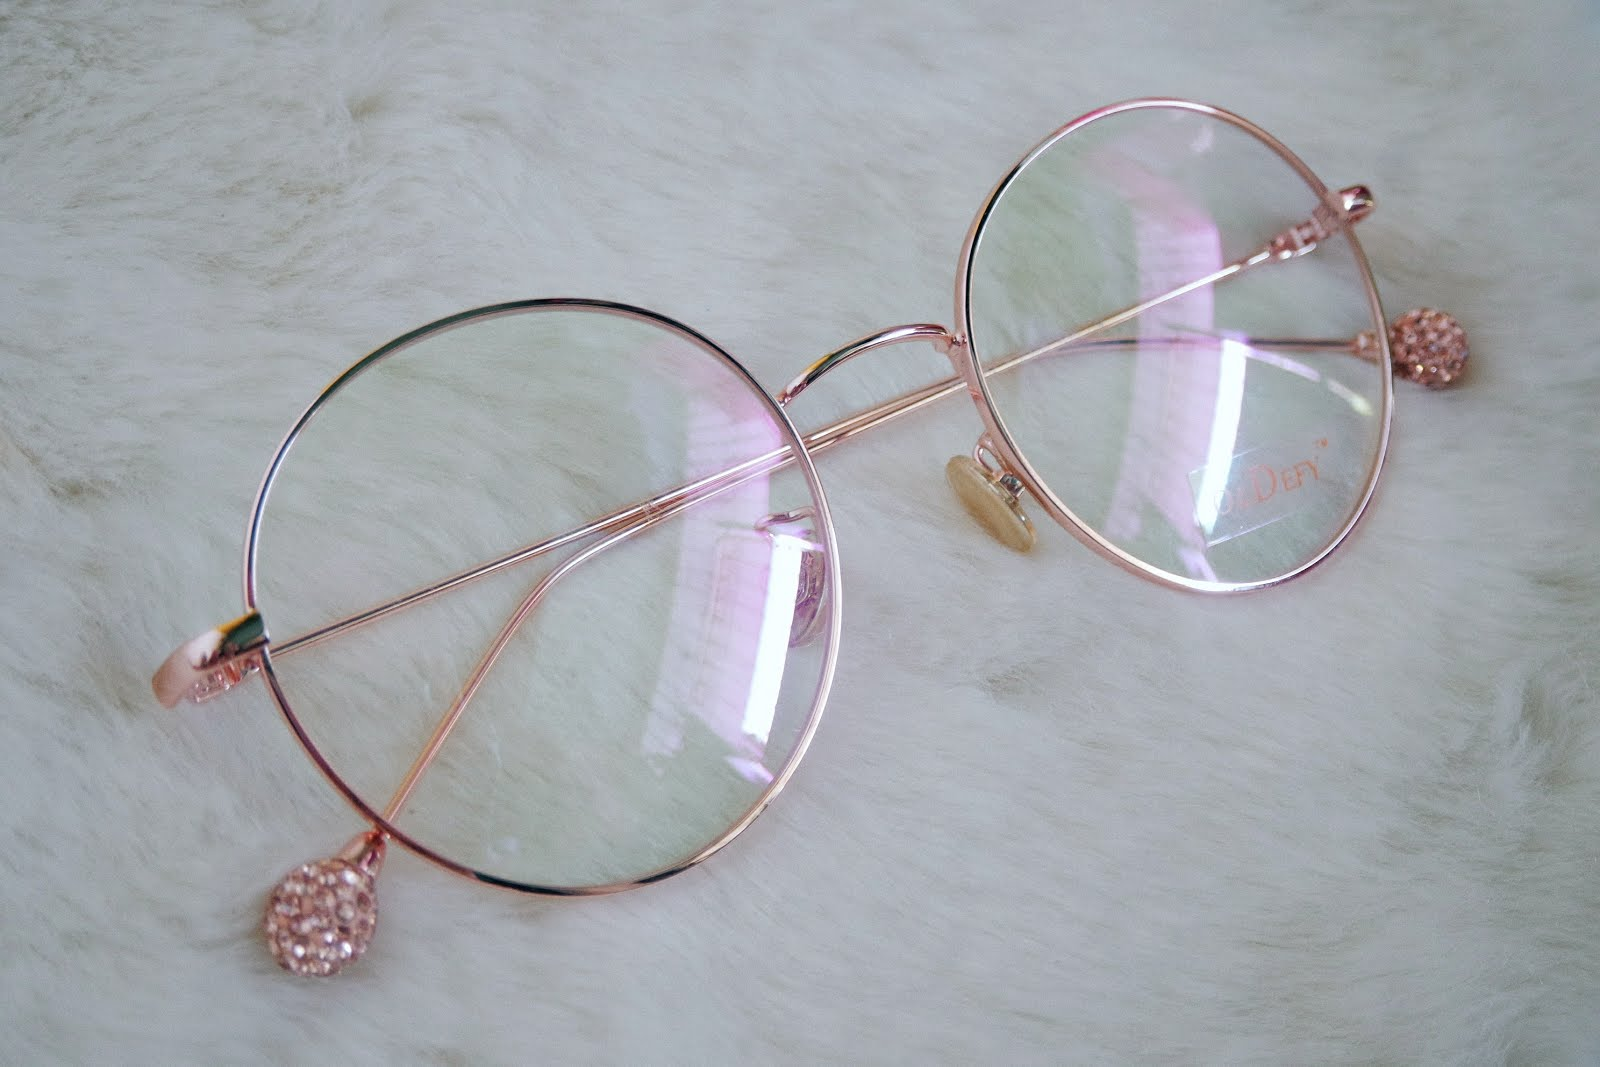 f53f9521c0e Affordable and Trendy Glasses from Zeelool - pinkislovebynix